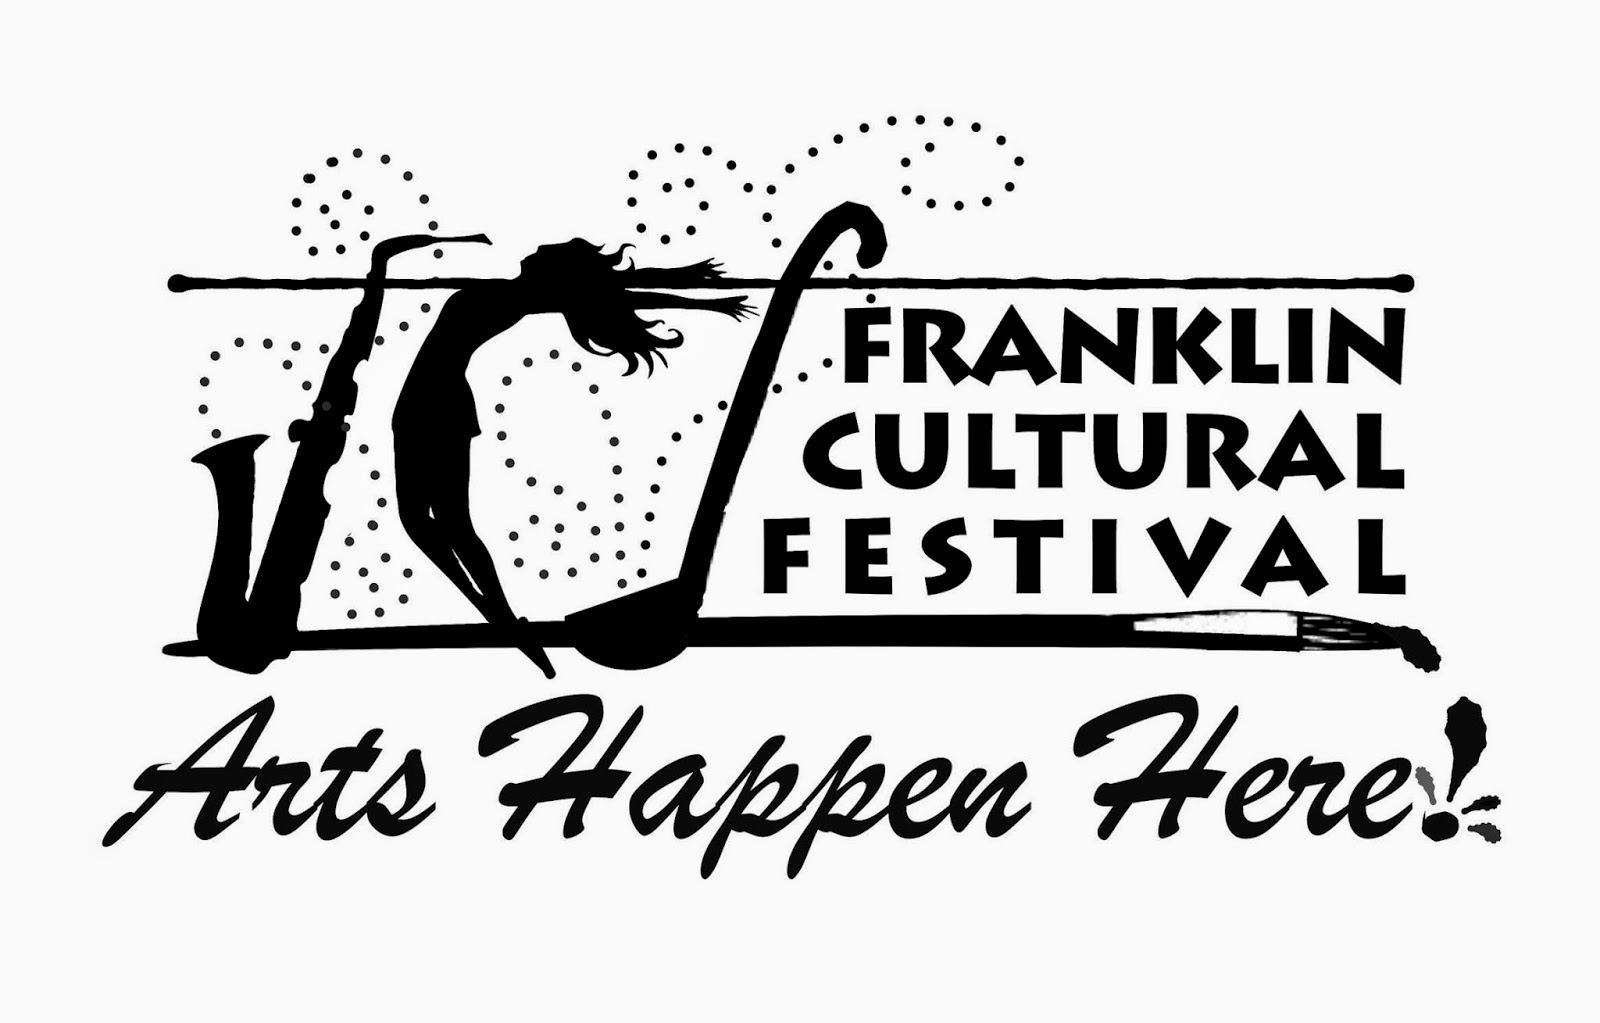 Franklin Cultural Festival - Arts Happen Here!